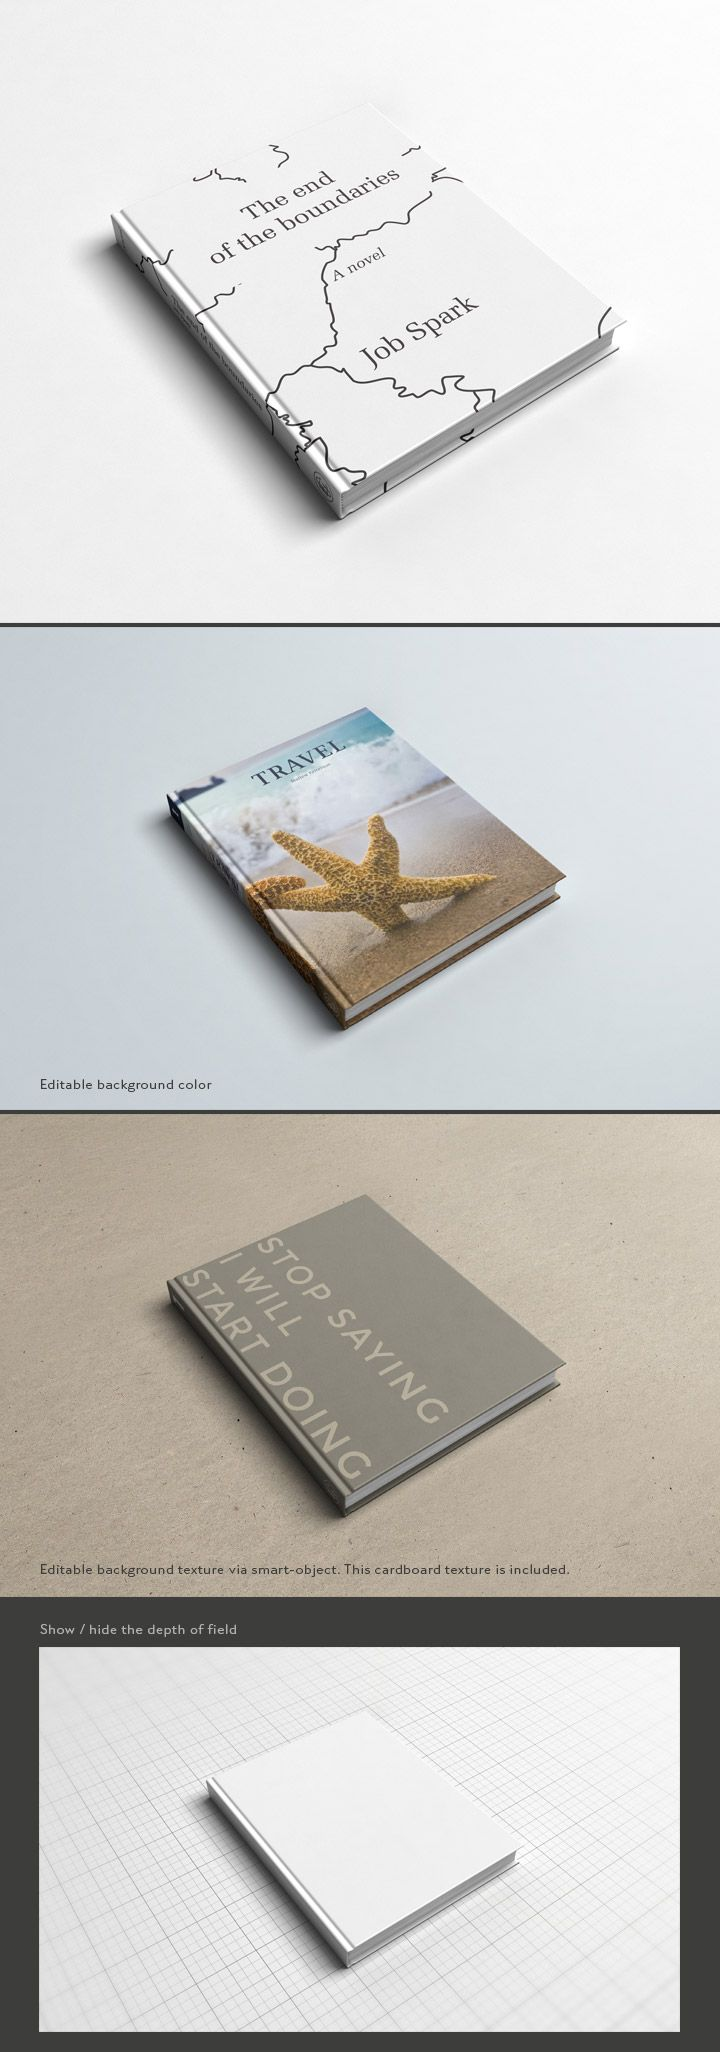 Here a free photorealistic mock up to showcase your book